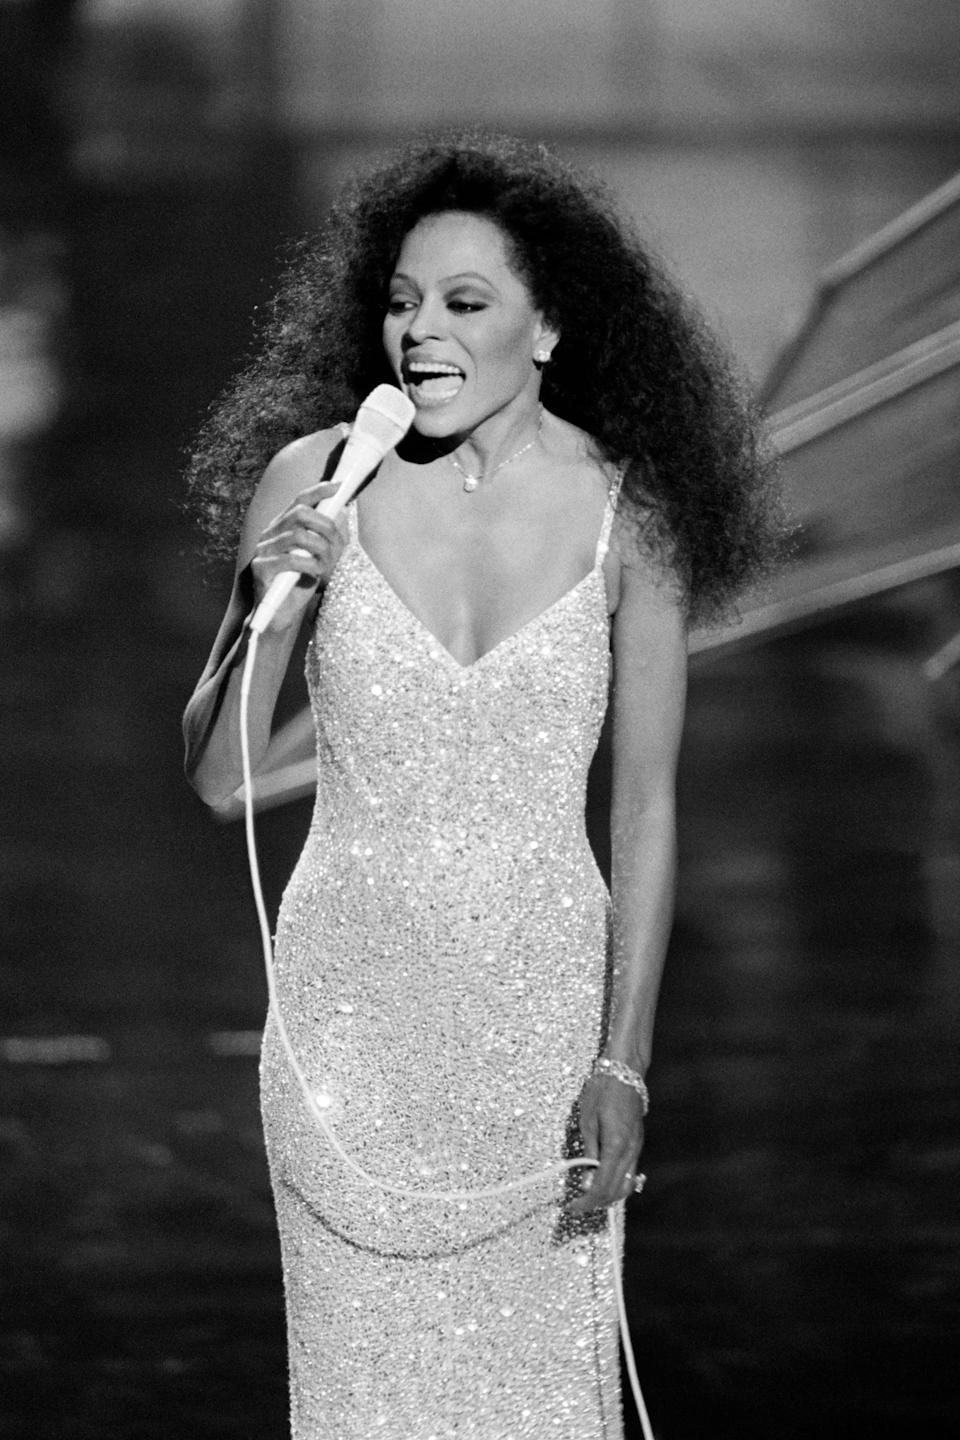 <p>Diana Ross's sparkly gown made her look like a real-life princess as she performed at the 57th annual Academy Awards. </p>